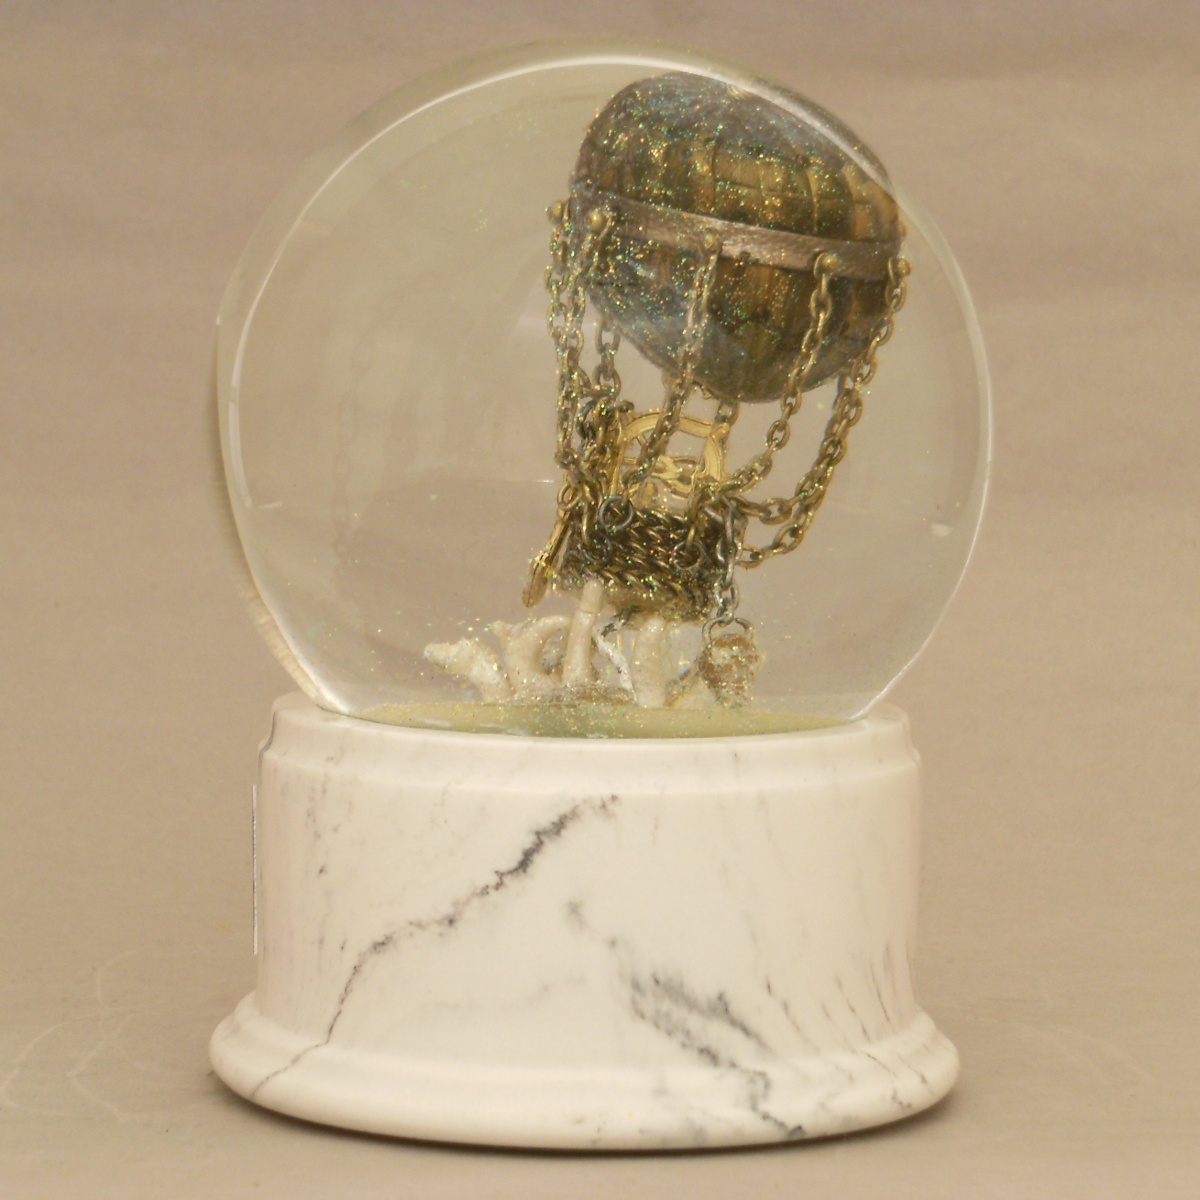 Uncharted Skies Snow Globe, Camryn Forrest Designs 2012